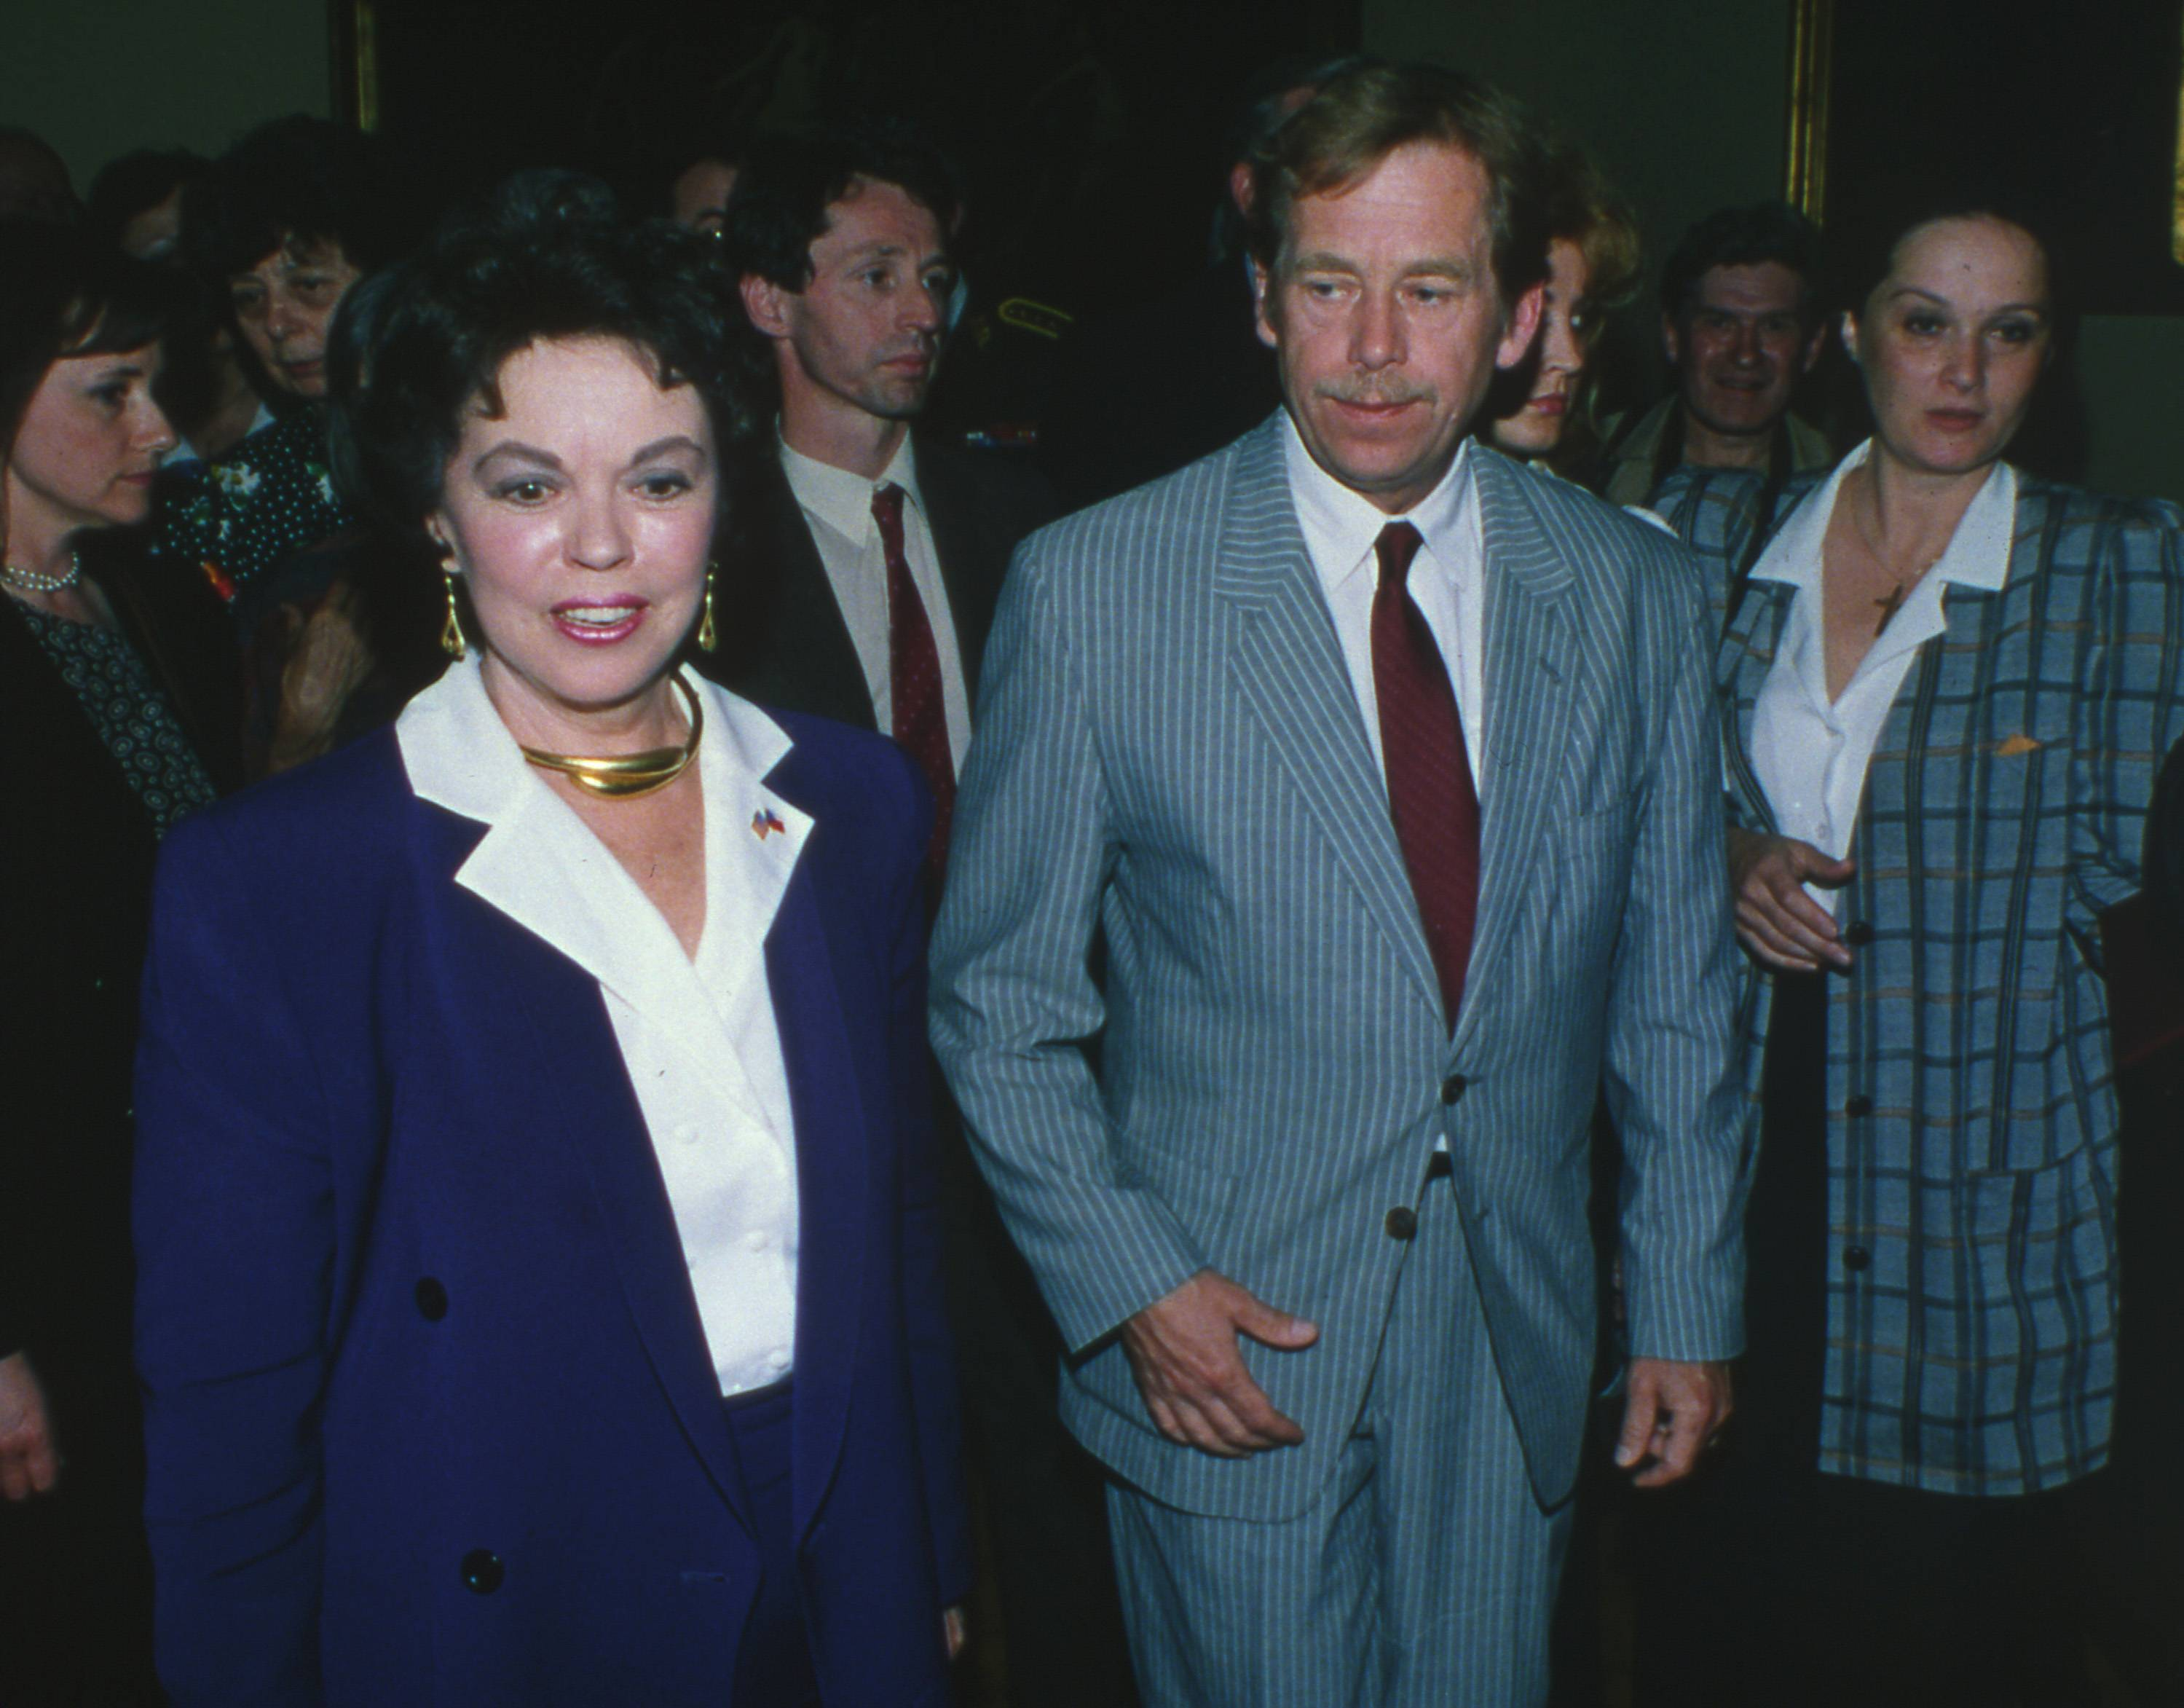 In this Sunday, May 6, 1990, file photo, U.S. Ambassador to Czechoslovakia Shirley Temple Black, left, and Czechoslovakian President Vaclav Havel take part in the celebration of the 45th anniversary of the Liberation of Pilsen at Pilsen Town Hall, Czechoslovakia.